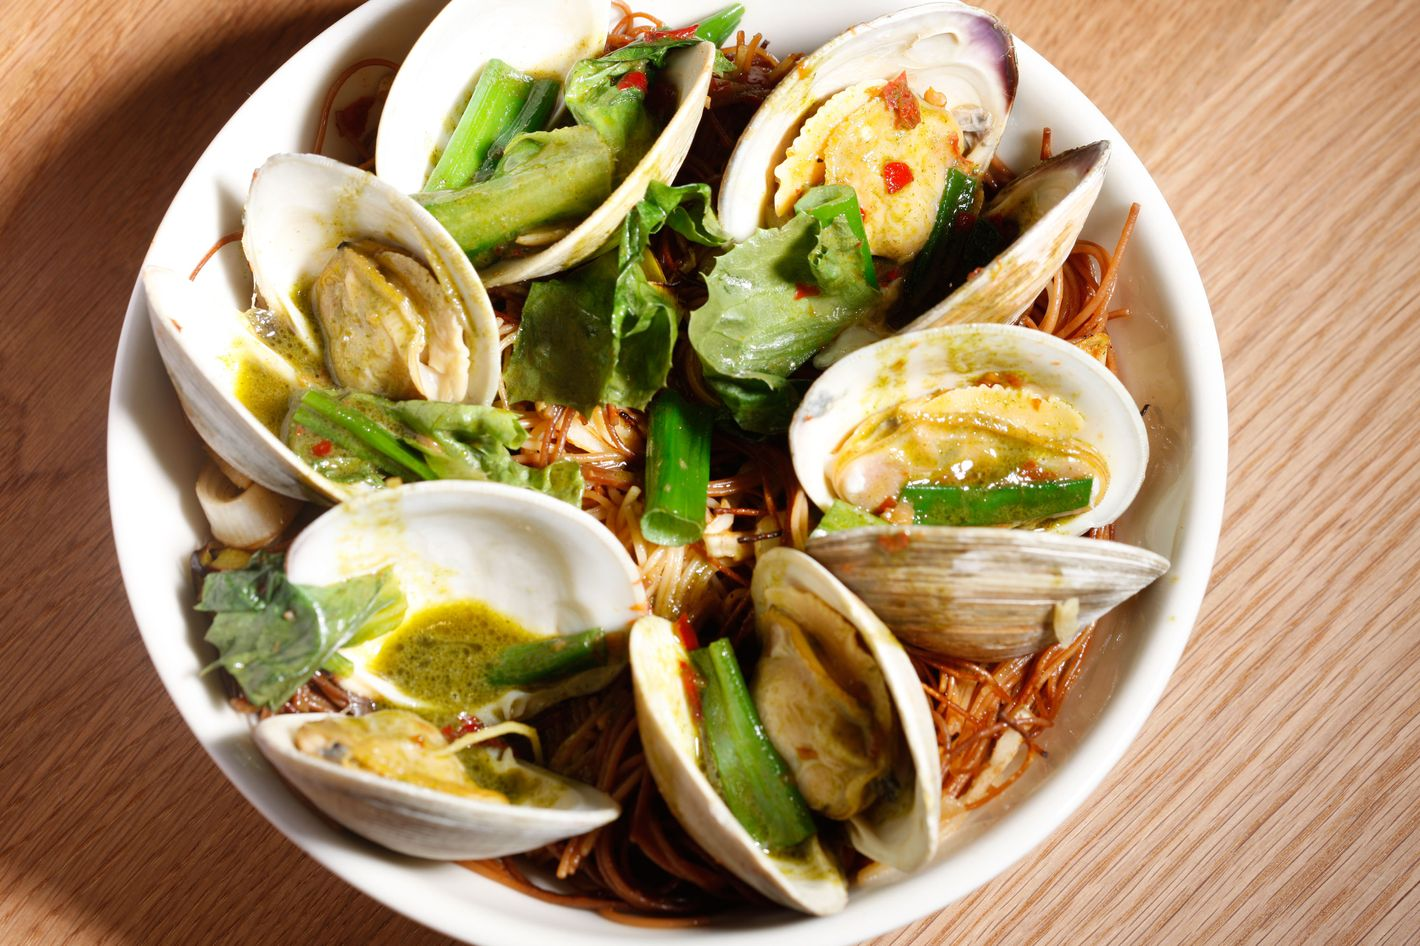 A dish of clams with crisp noodles.